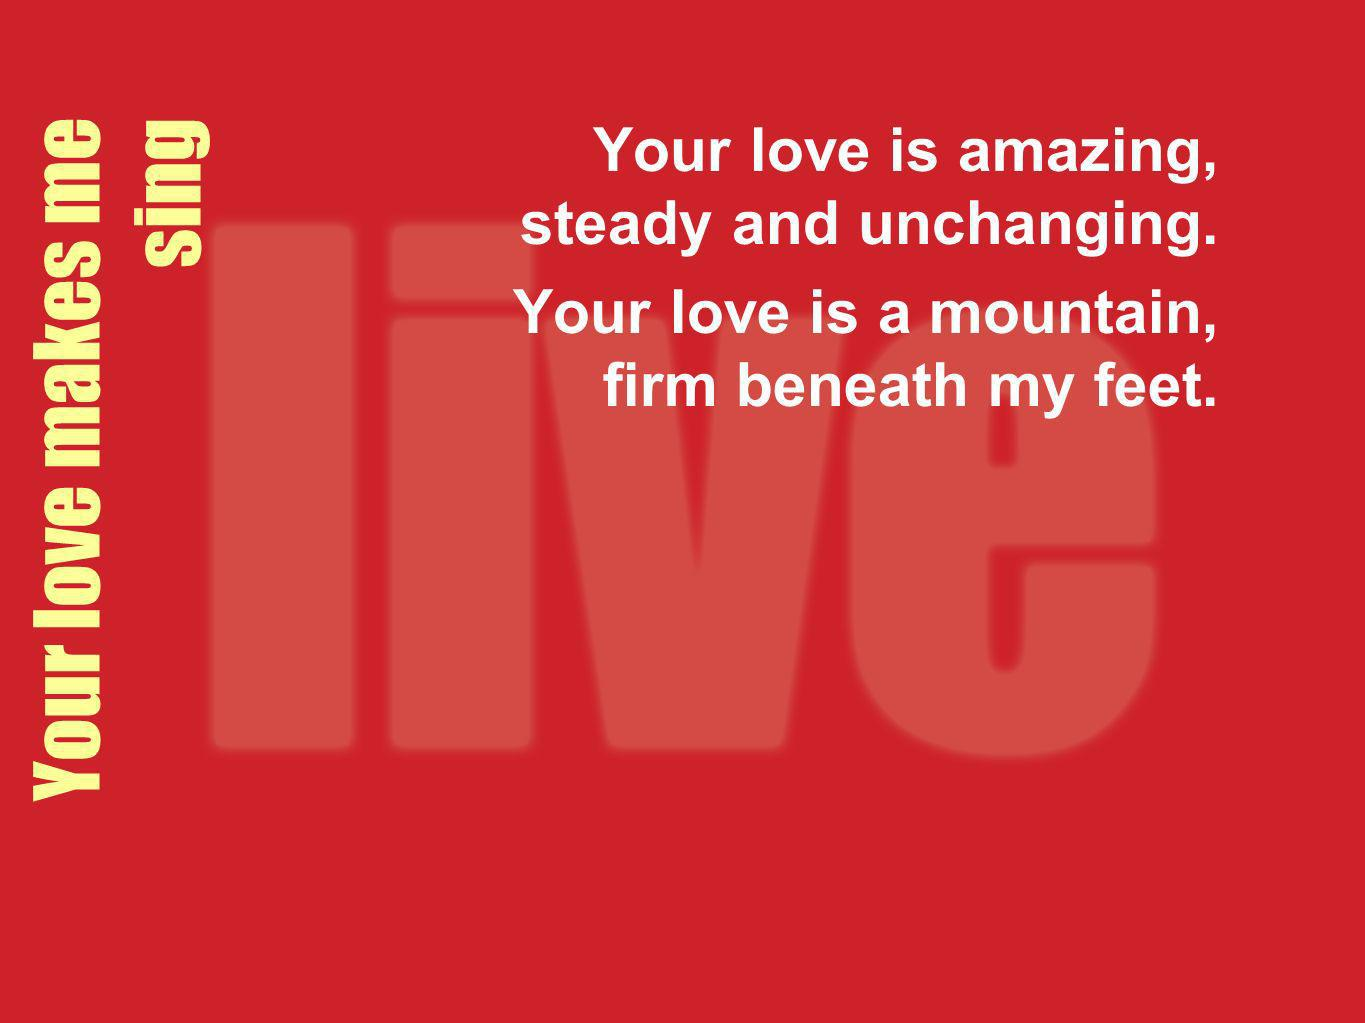 Your love makes me sing Your love is amazing, steady and unchanging. Your love is a mountain, firm beneath my feet.